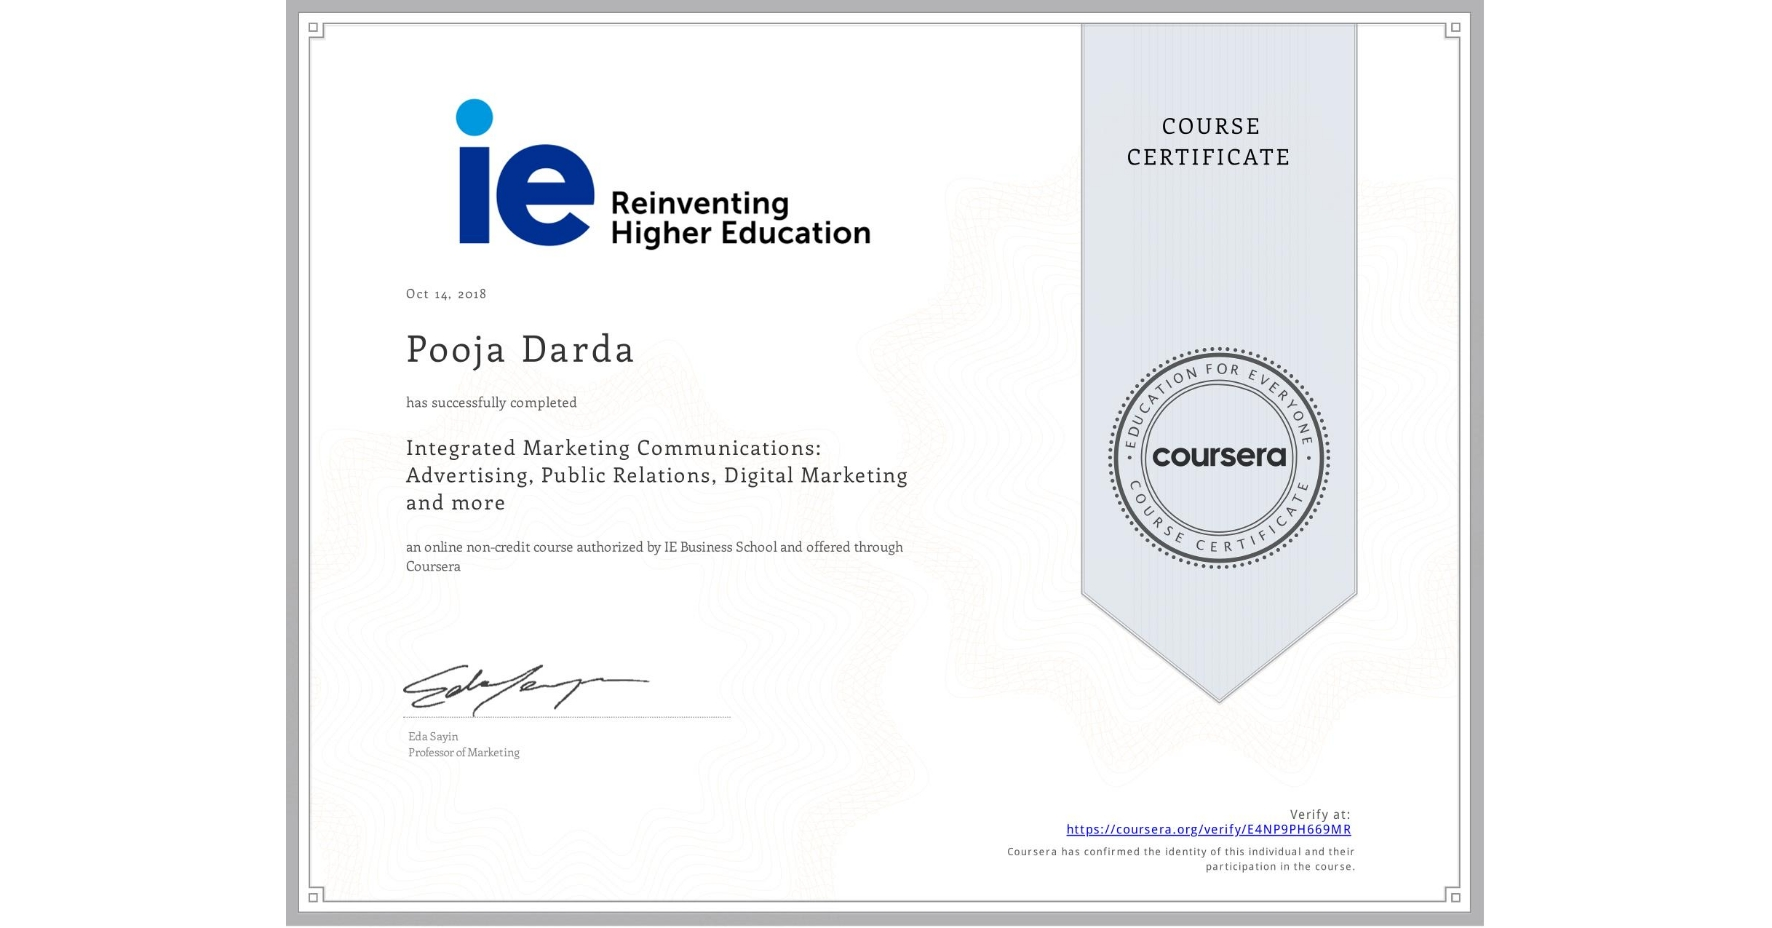 View certificate for Pooja Darda, Integrated Marketing Communications: Advertising, Public Relations, Digital Marketing and more, an online non-credit course authorized by IE Business School and offered through Coursera